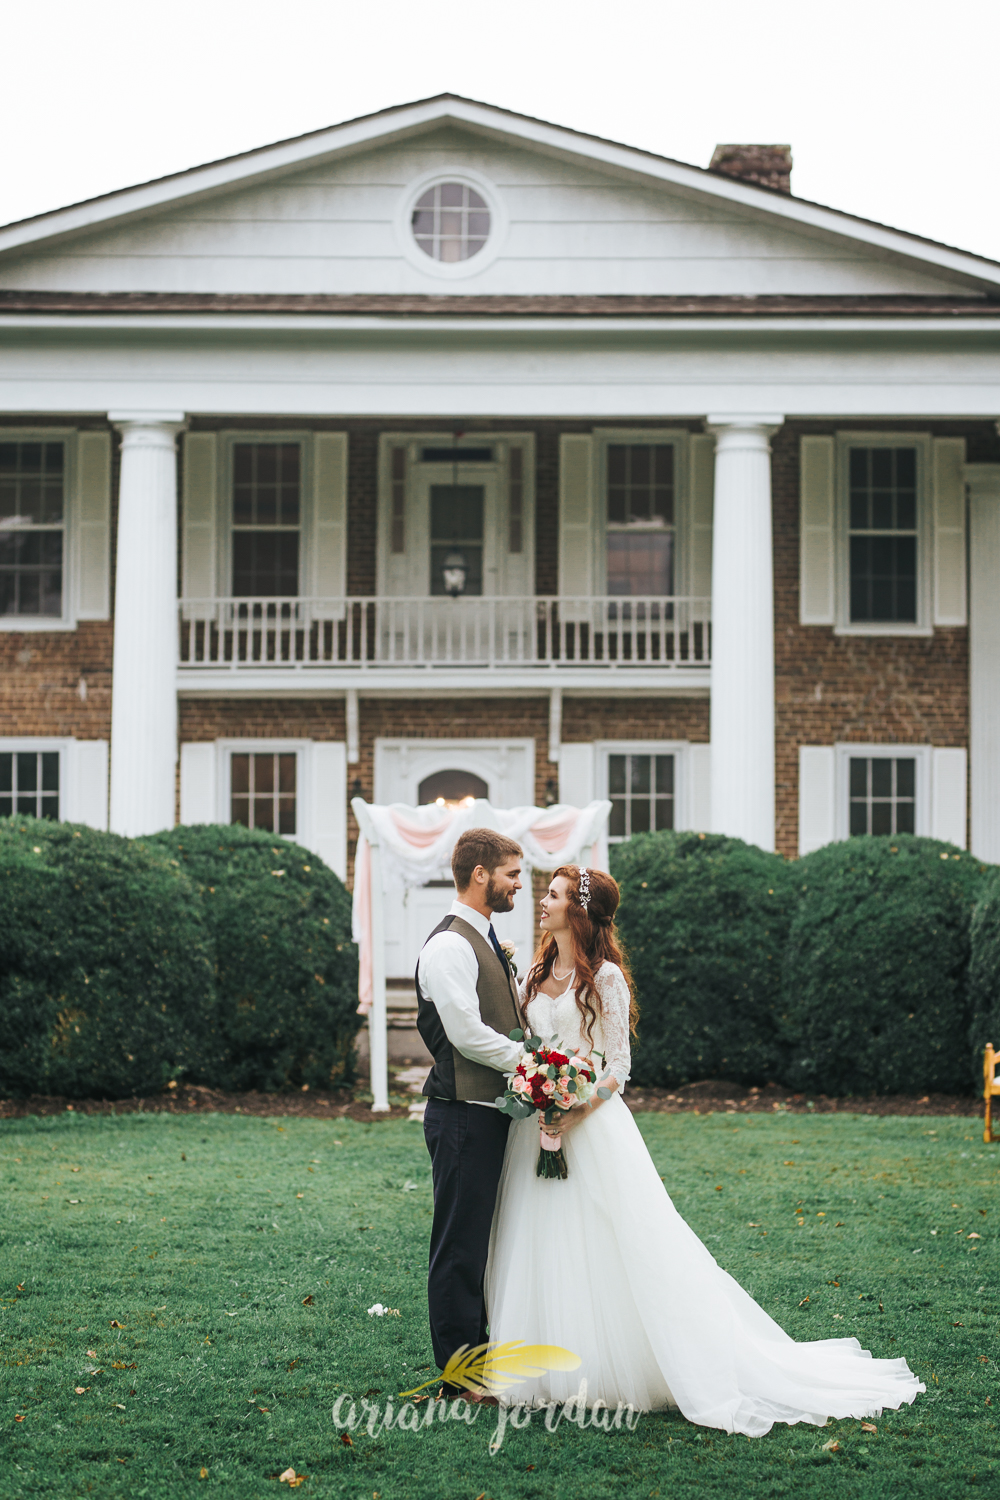 204 - Ariana Jordan - Kentucky Wedding Photographer - Landon & Tabitha_.jpg